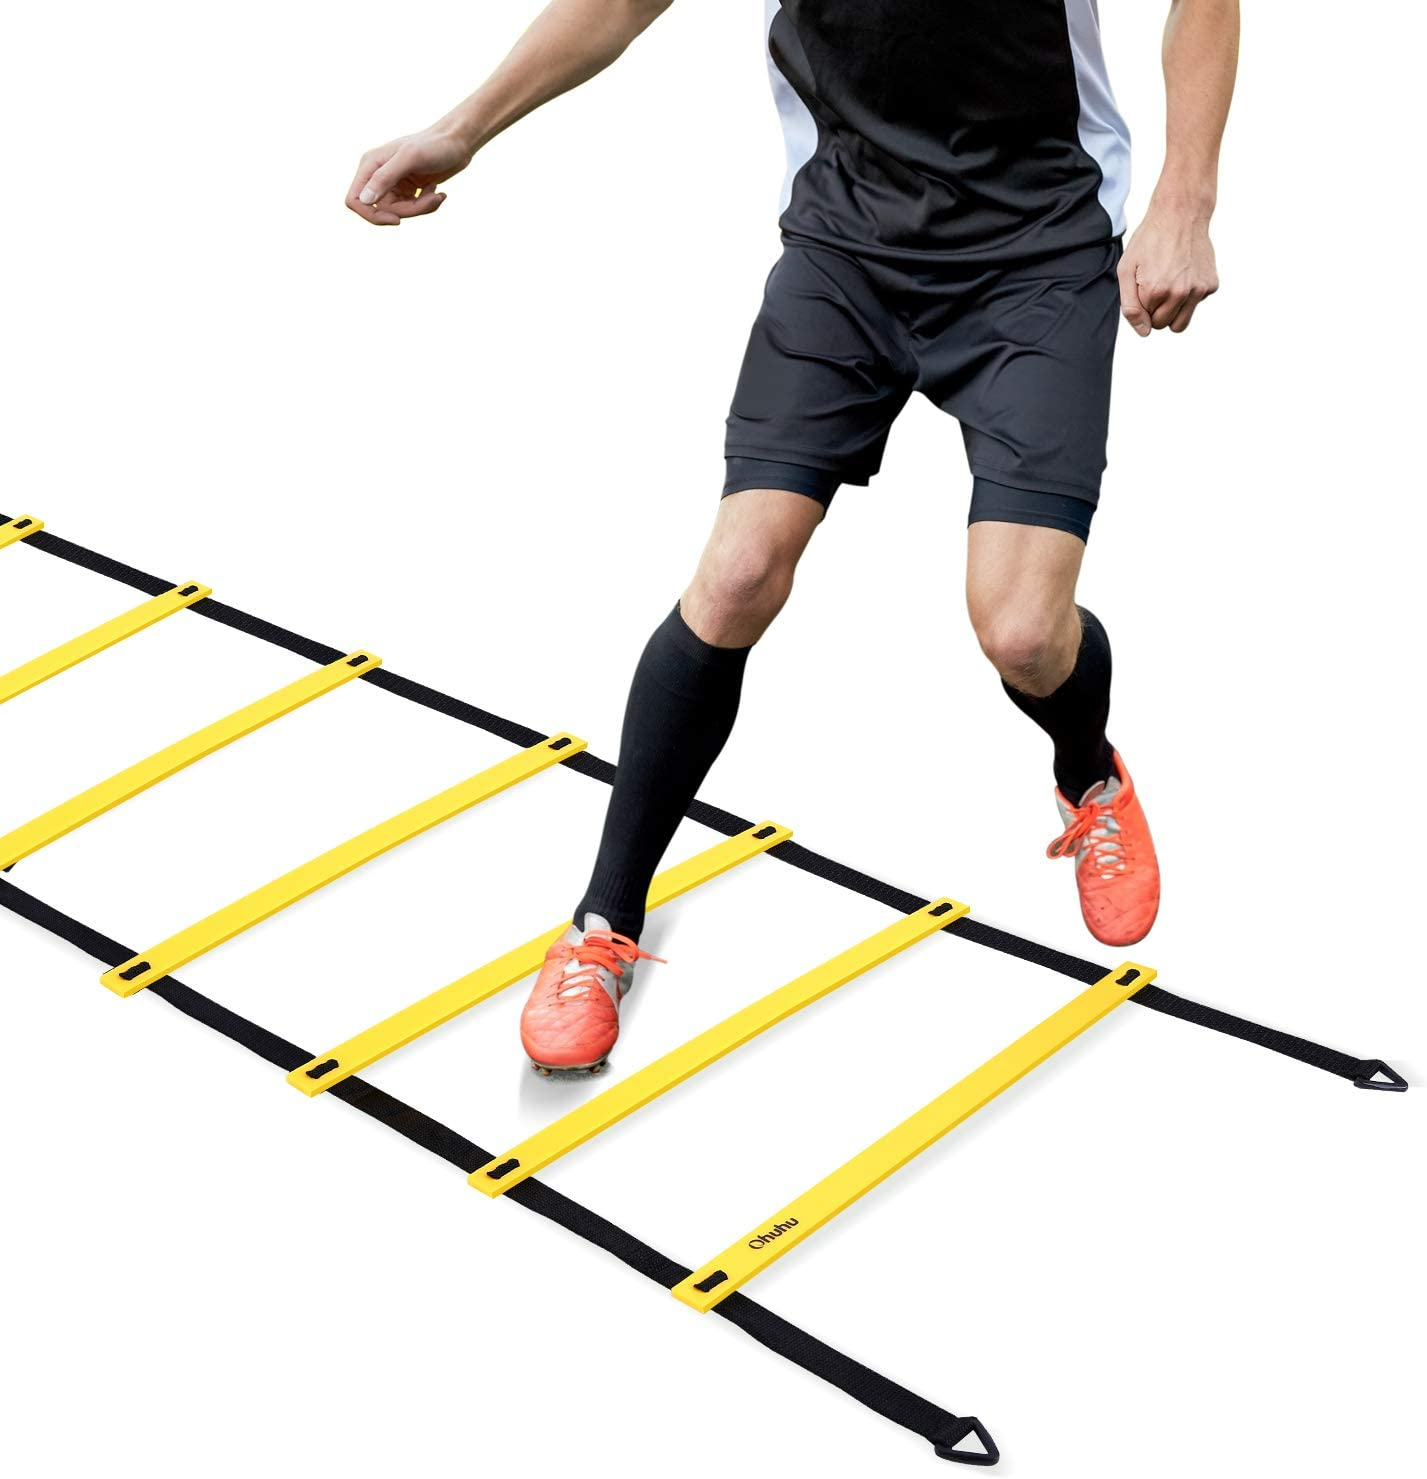 Ohuhu Agility Ladder, Speed Training Exercise Ladders for Soccer Football Boxing Footwork Sports Speed Agility Training with Carry Bag,20ft 12